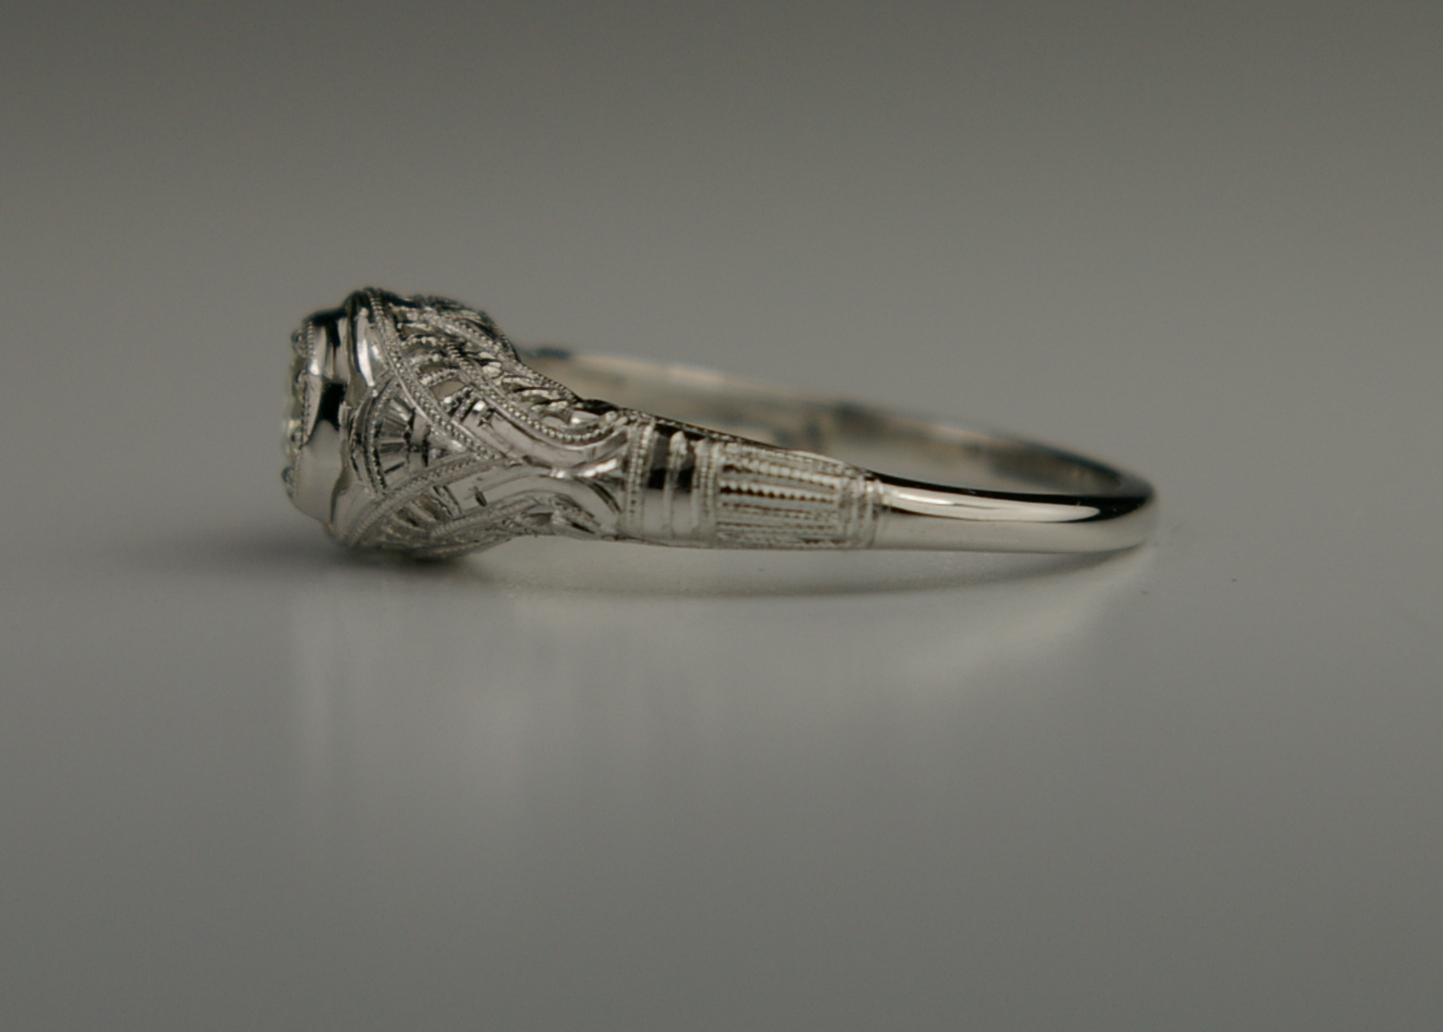 antique-Edwardian-ring-made-of-platinum-at-Crane-Jewelers-Ltd.-Seattle-after-restoration.jpg